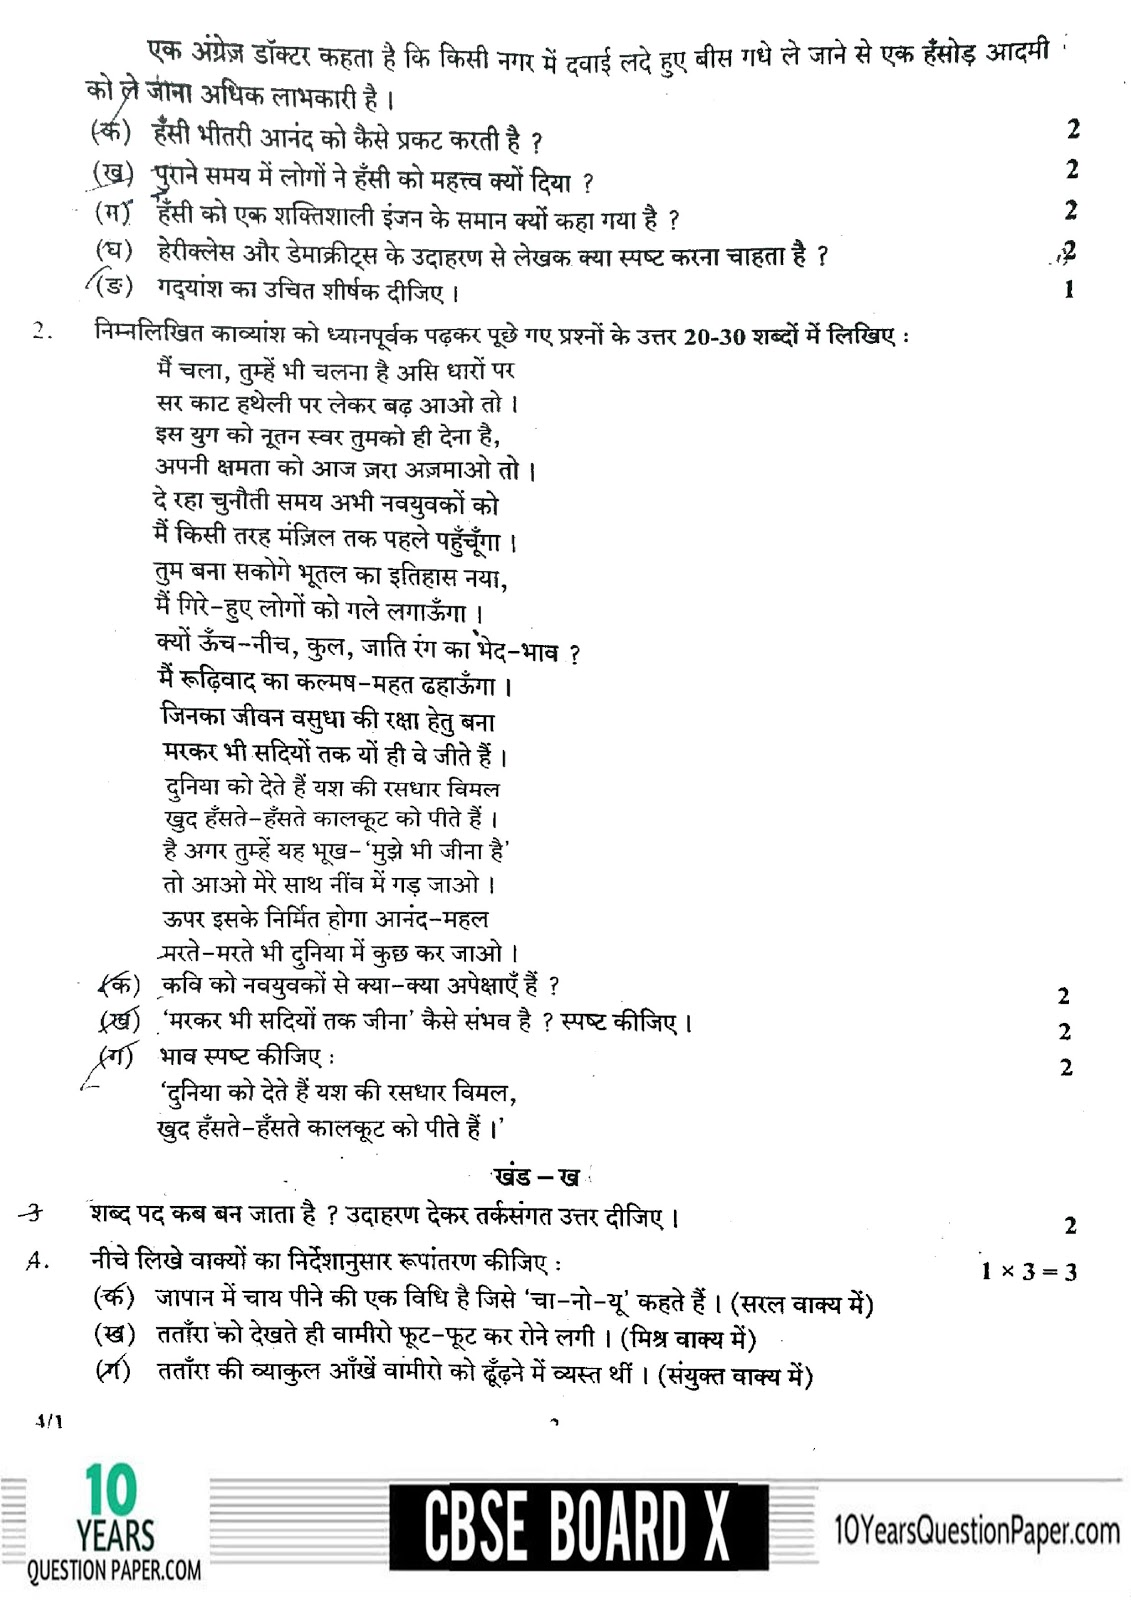 CBSE Board 2018 Hindi Course B Question paper Class 10 Page-02